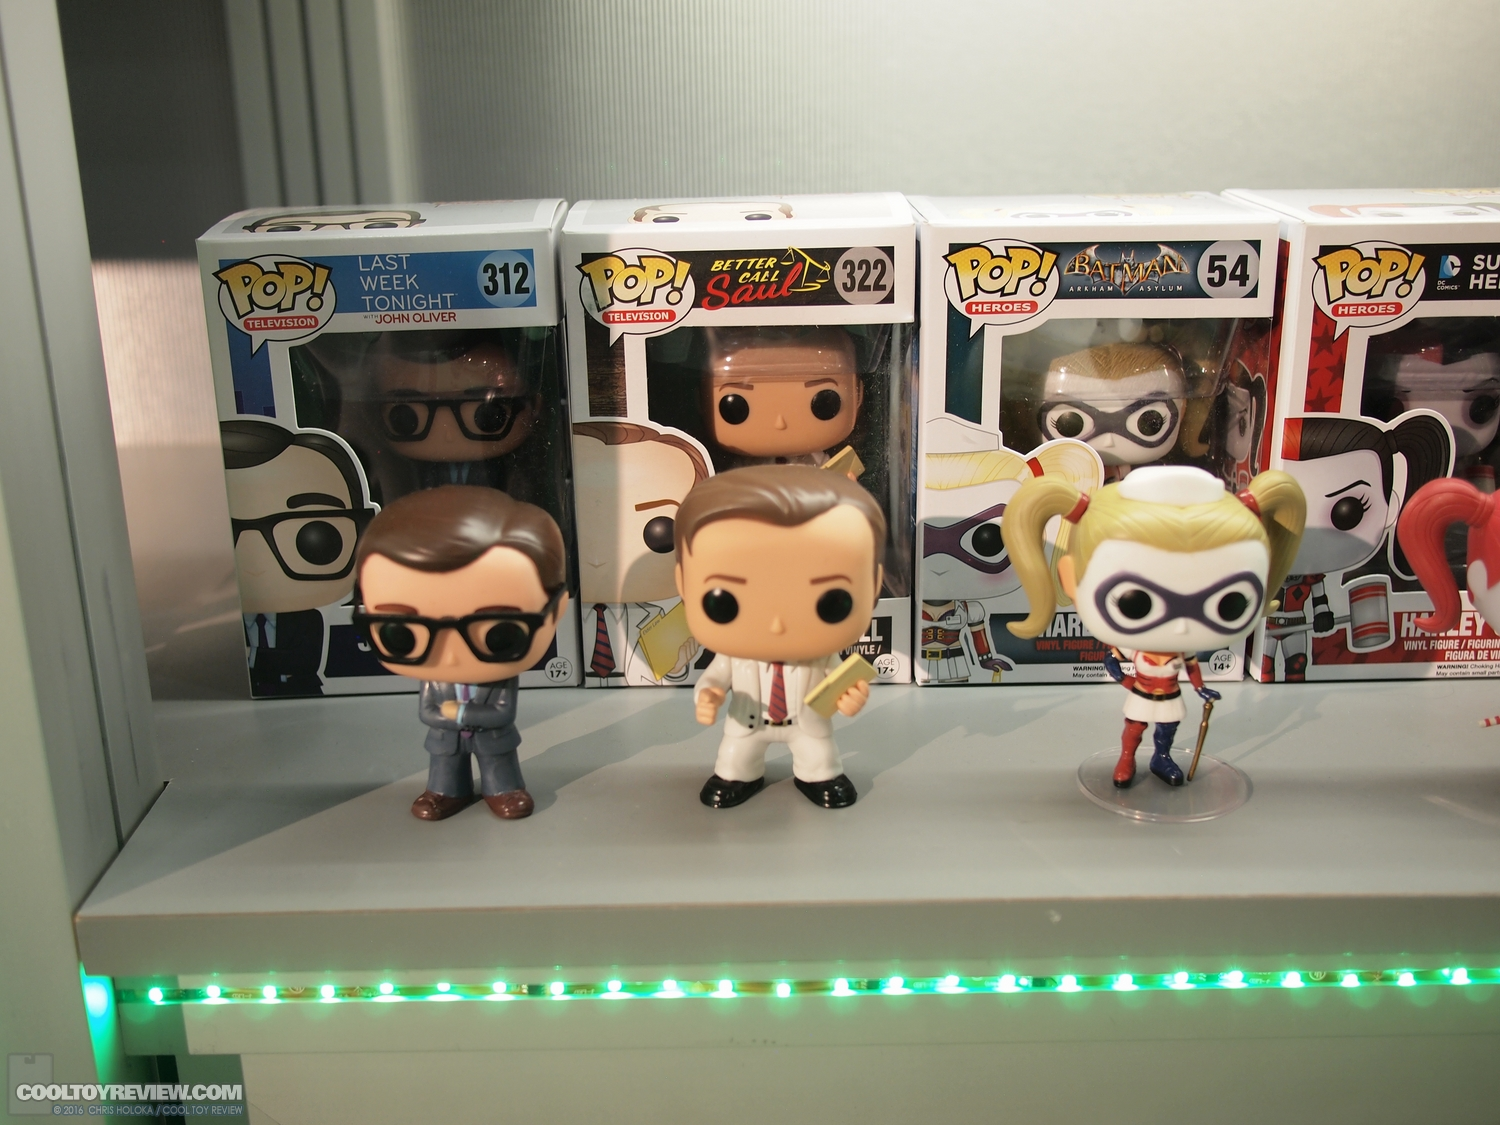 http://www.cooltoyreview.com/2016-Toy-Fair/Toy-Fair-2016-funko/P1015290.JPG